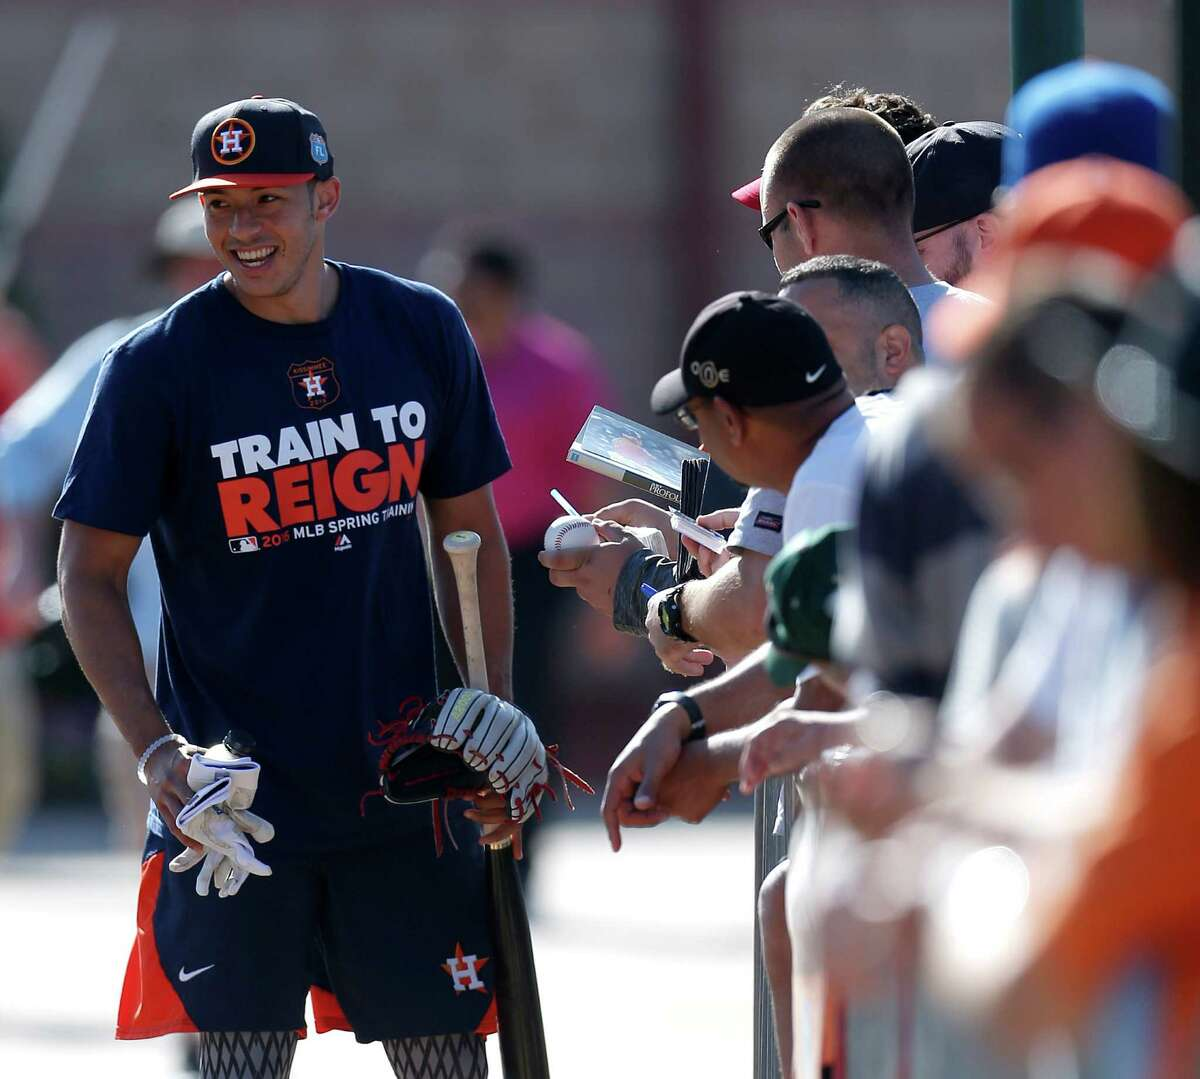 Houston Astros SS Carlos Correa stops to sign autographs during spring training in Kissimmee, Florida, Monday, Feb. 22, 2016.